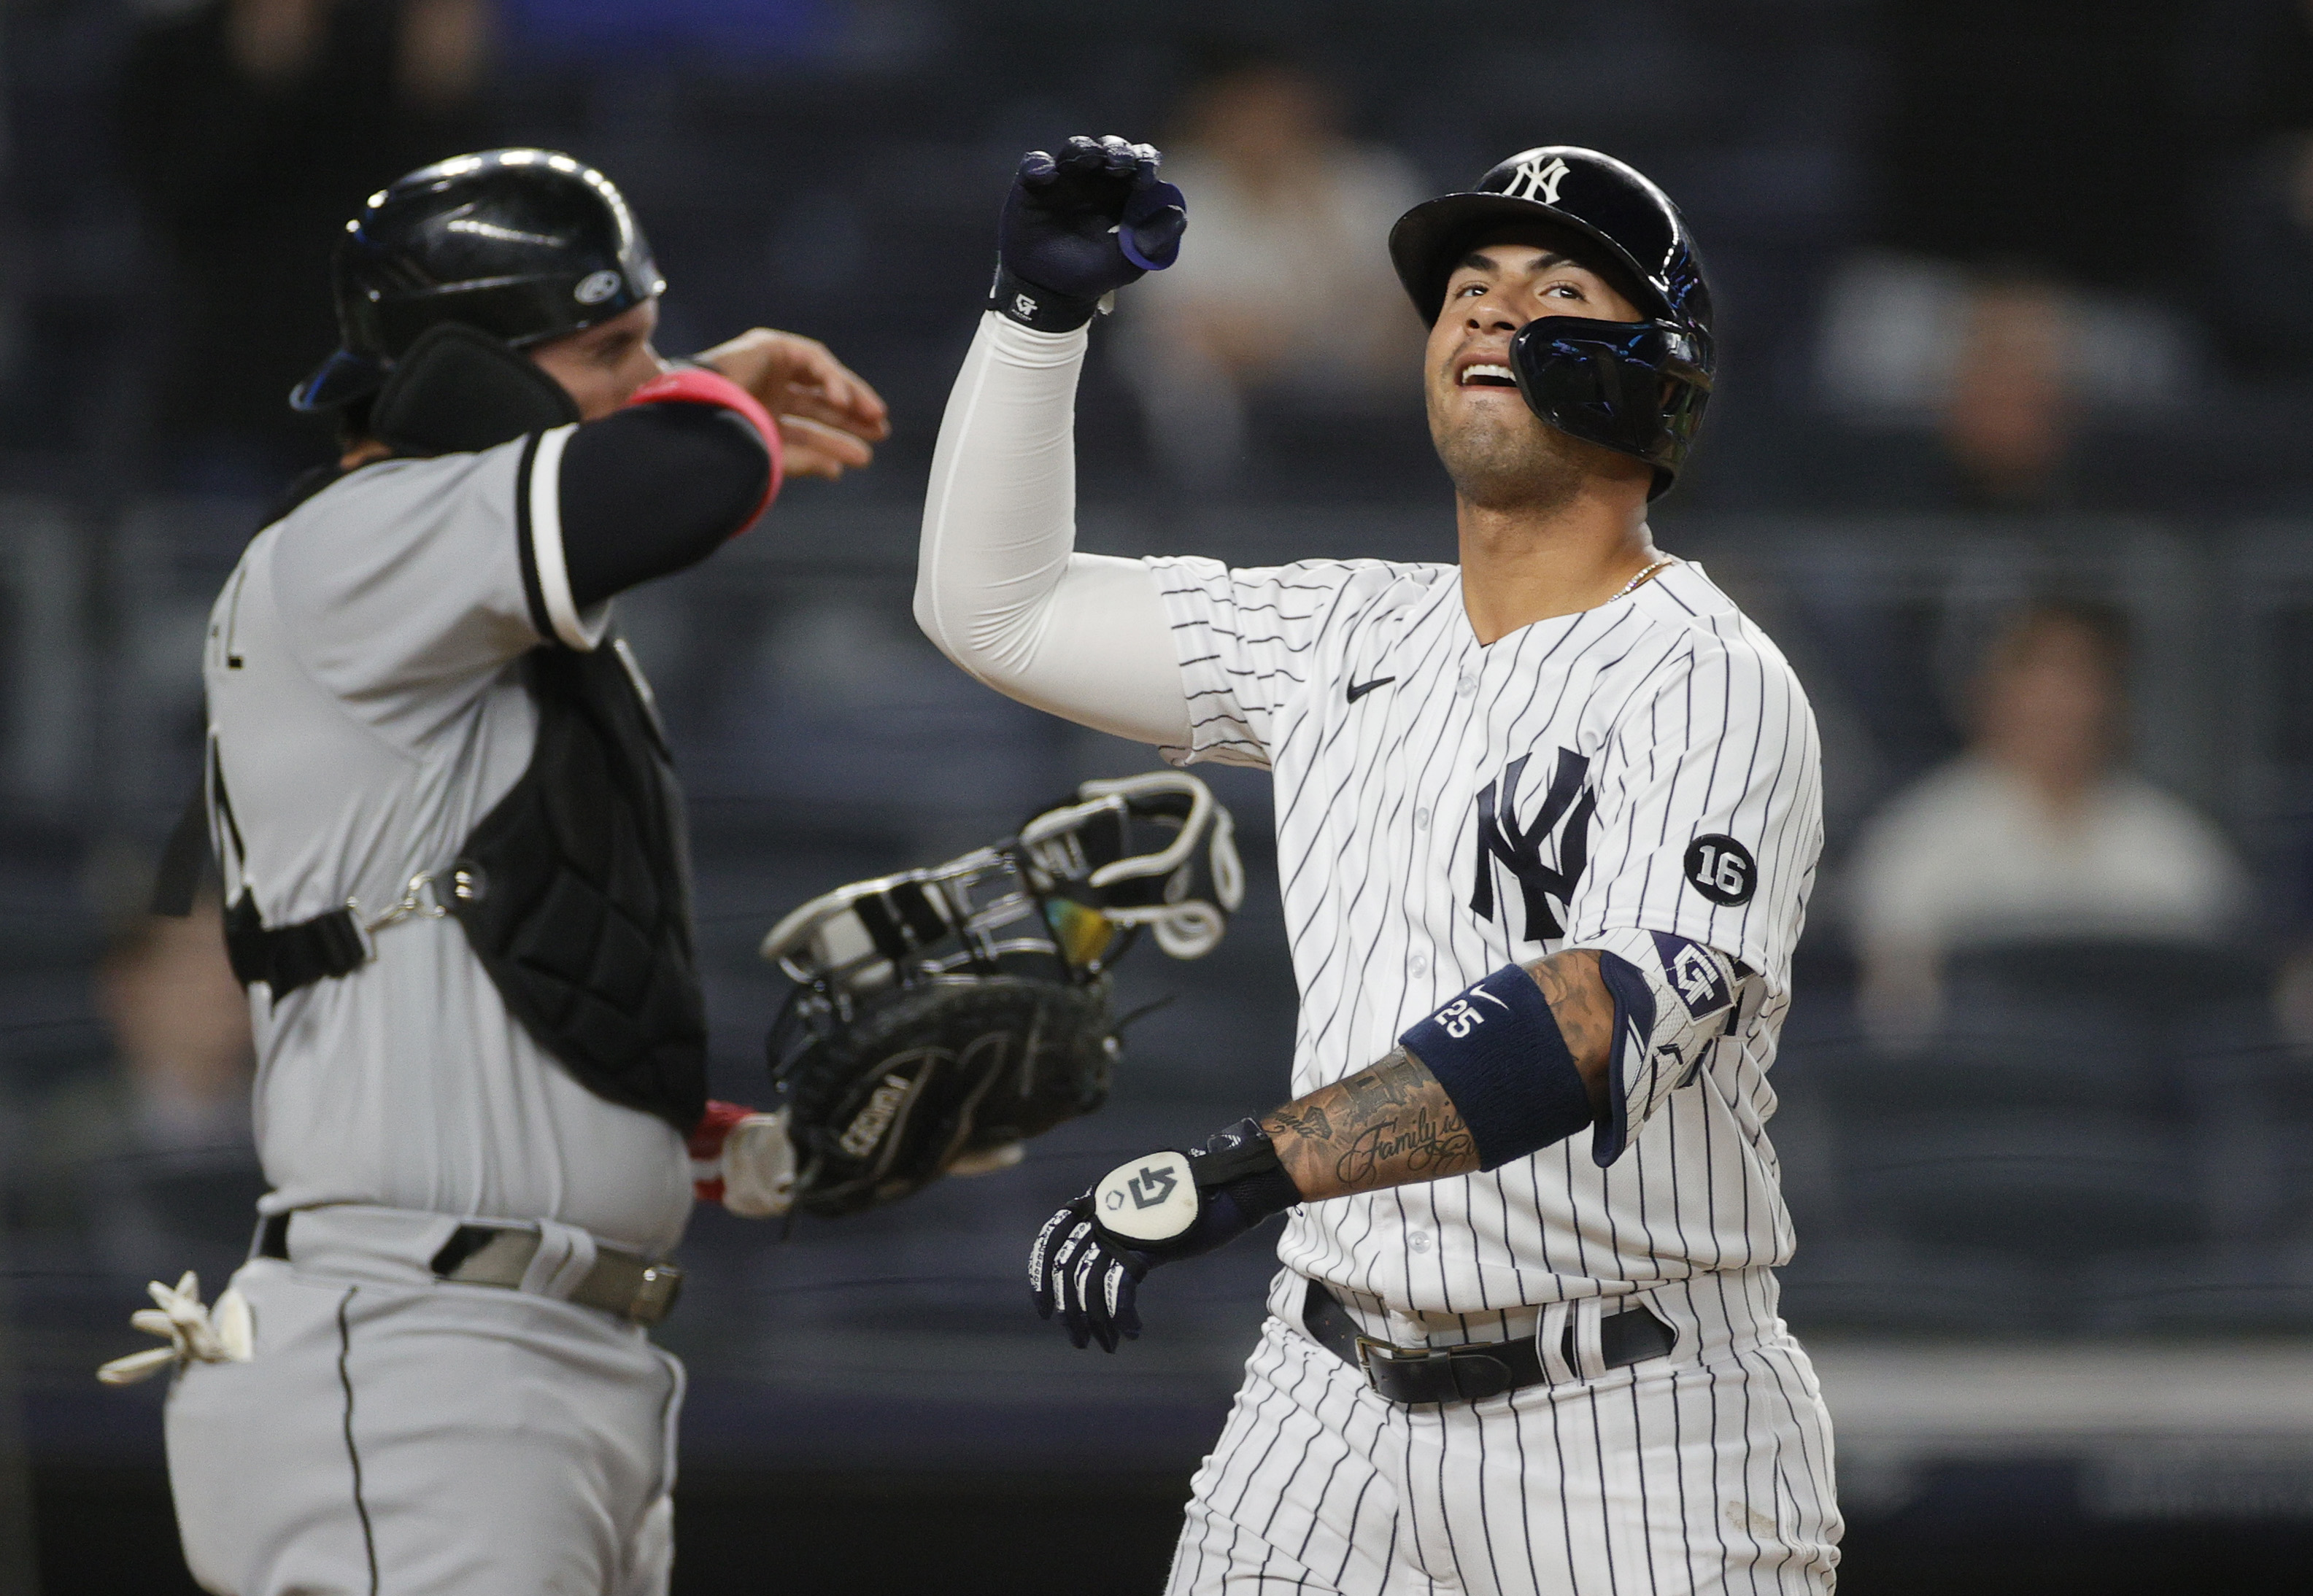 Gleyber Torres #25 of the New York Yankees reacts after hitting a home run during the seventh inning against the Chicago White Sox at Yankee Stadium on May 21, 2021 in the Bronx borough of New York City.